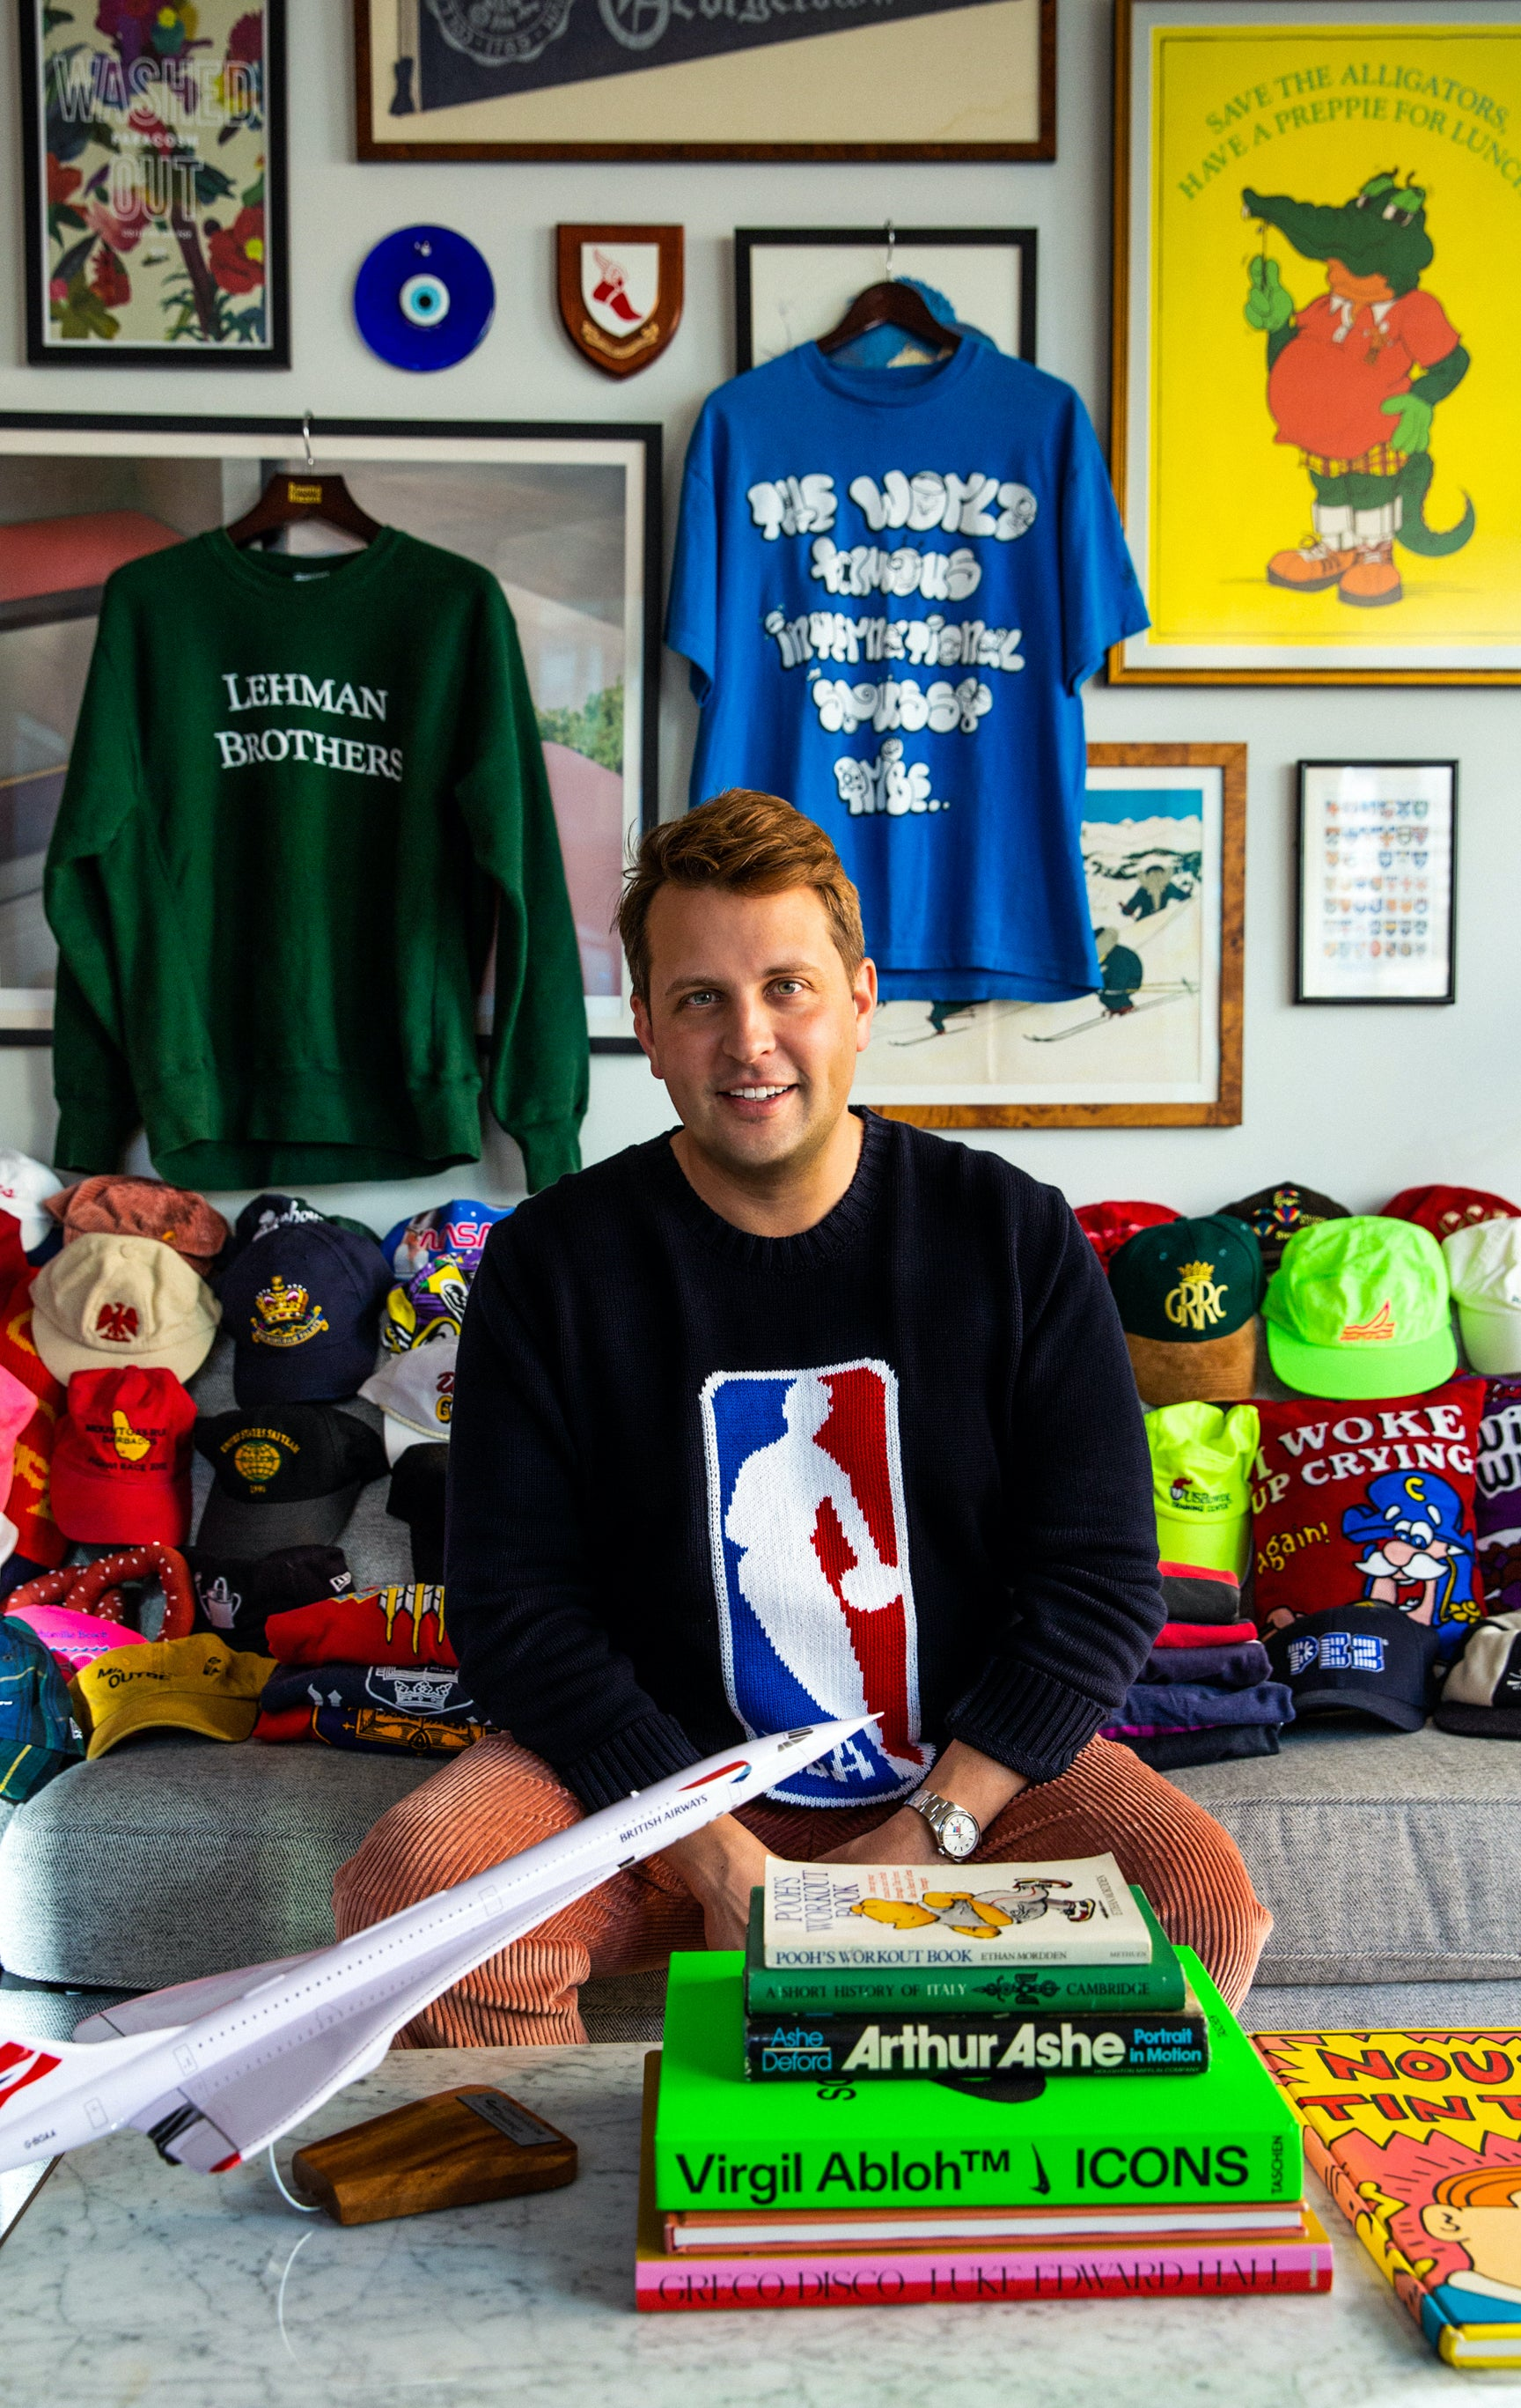 Jack Carlson wearing the NBA sweater in navy sitting on a couch surrounded by different hats